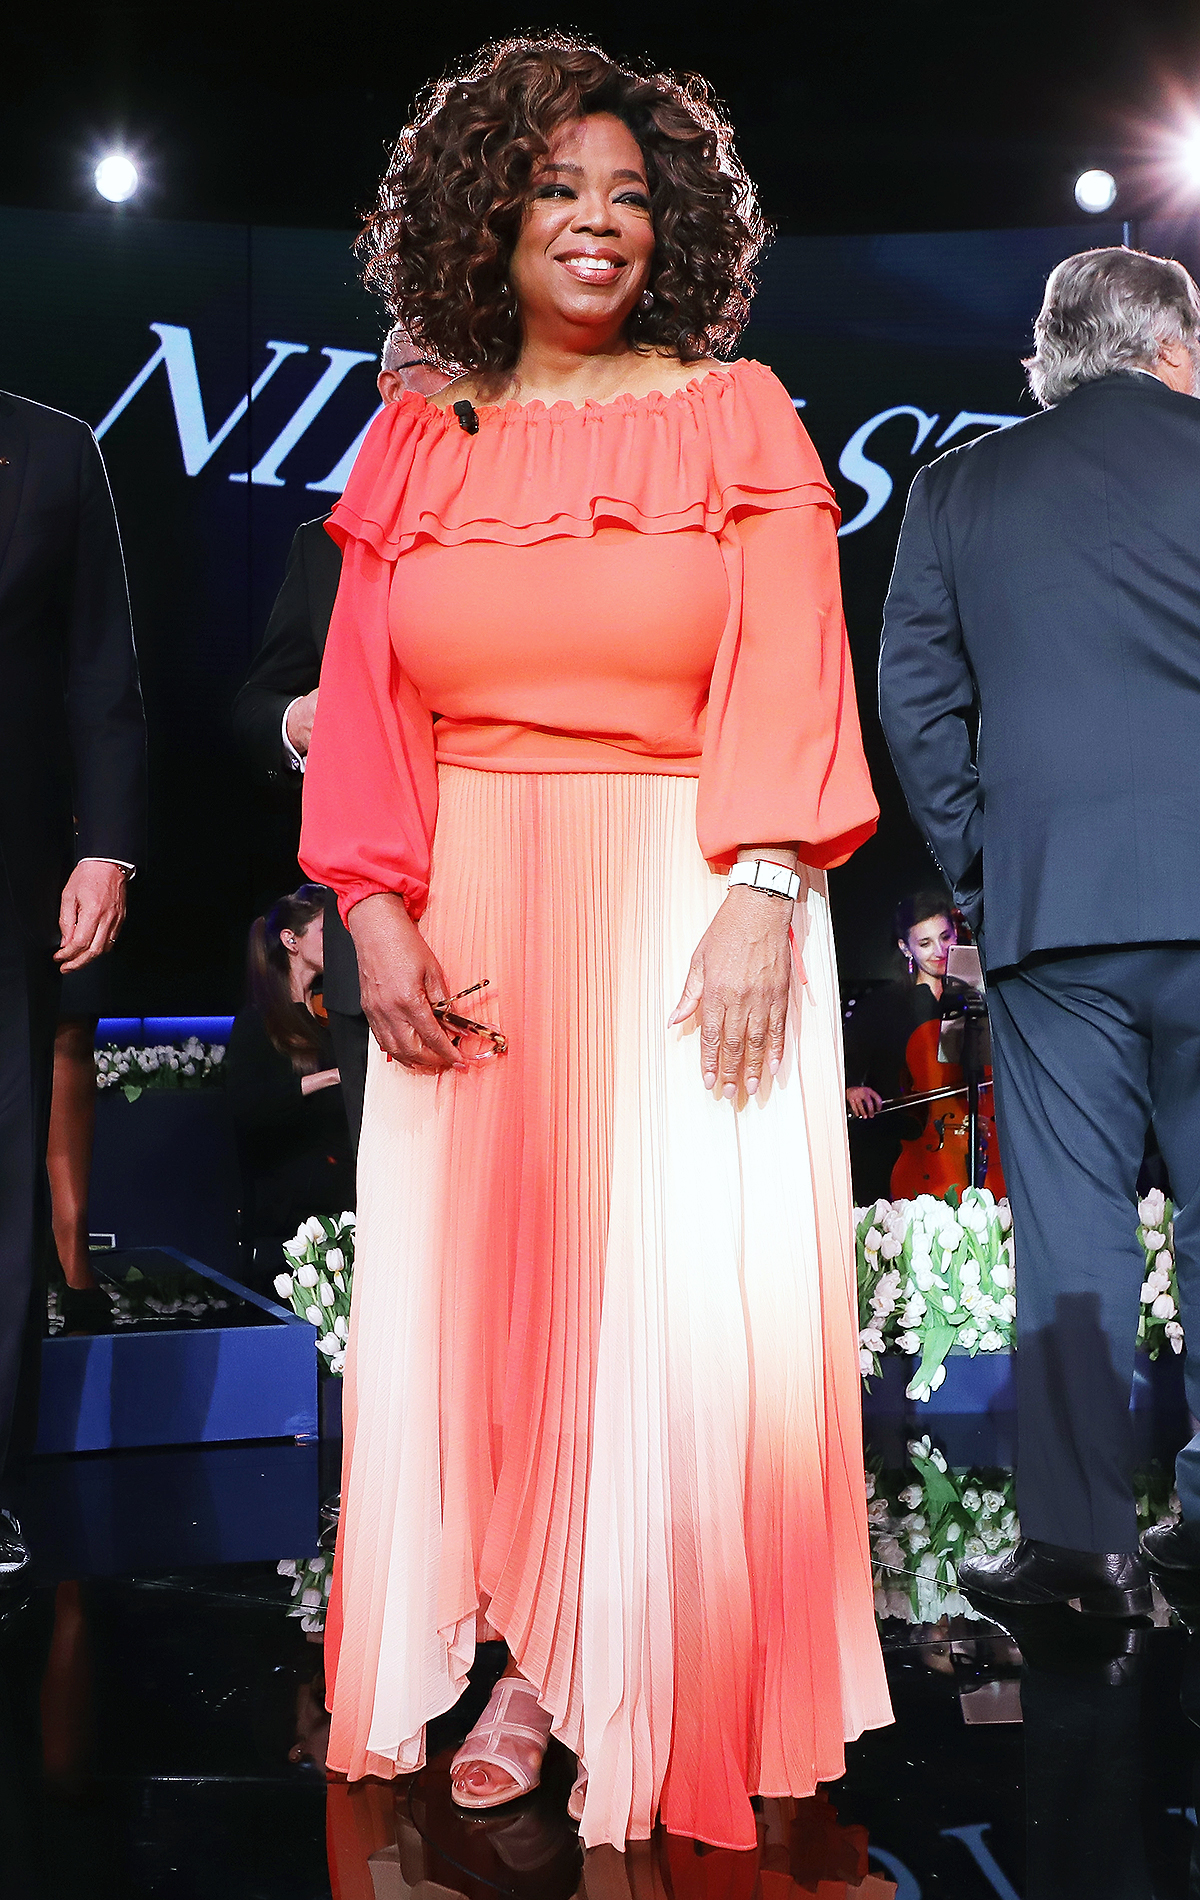 Holland America Line And Nieuw Statendam Dedication With Godmother Oprah Winfrey